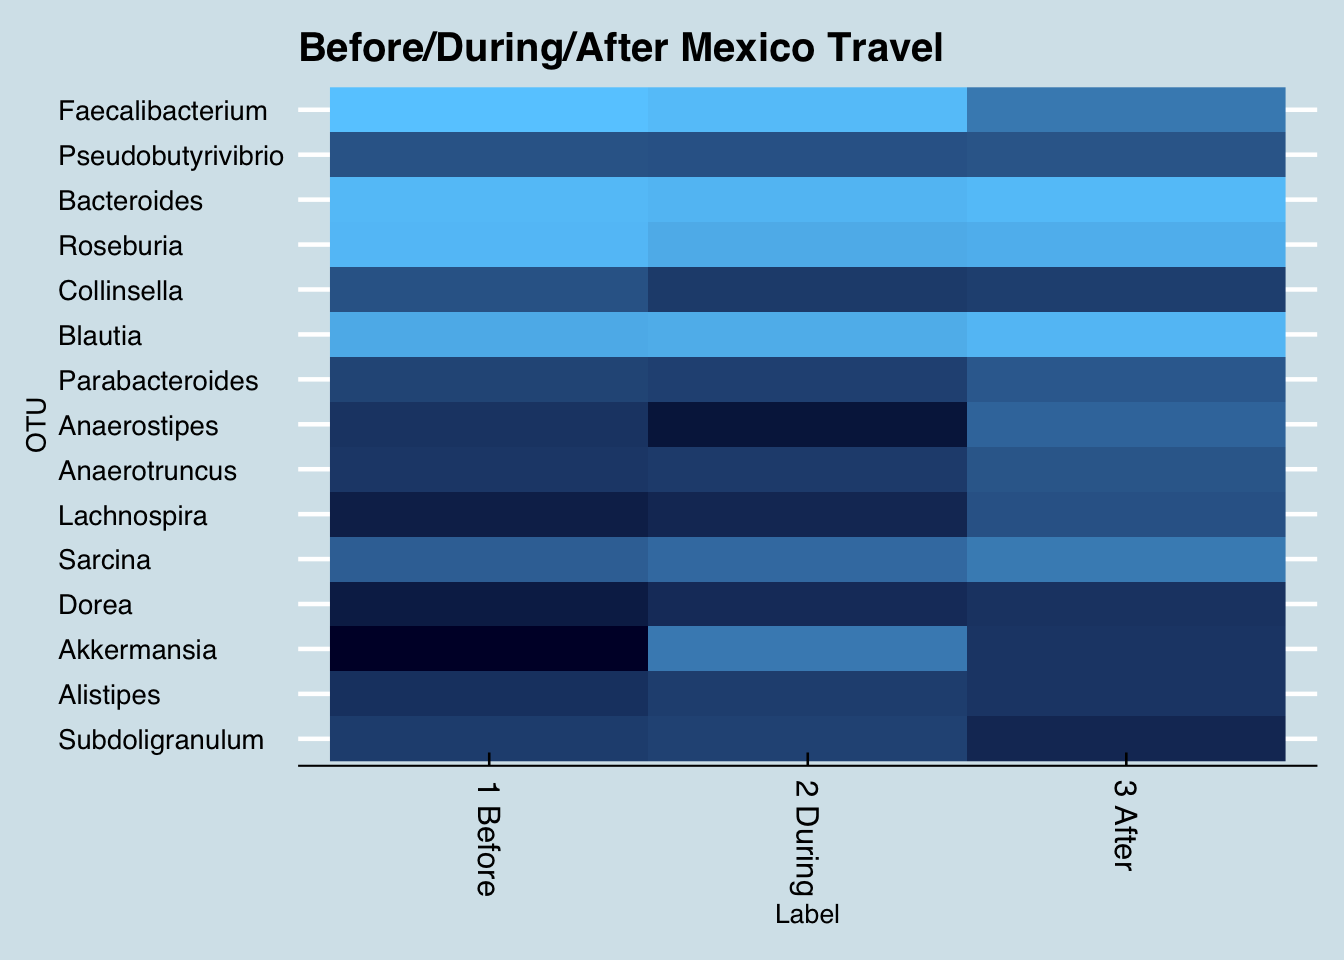 Changes in key genus abundance when traveling to Mexico. (Lighter shades are more abundant)